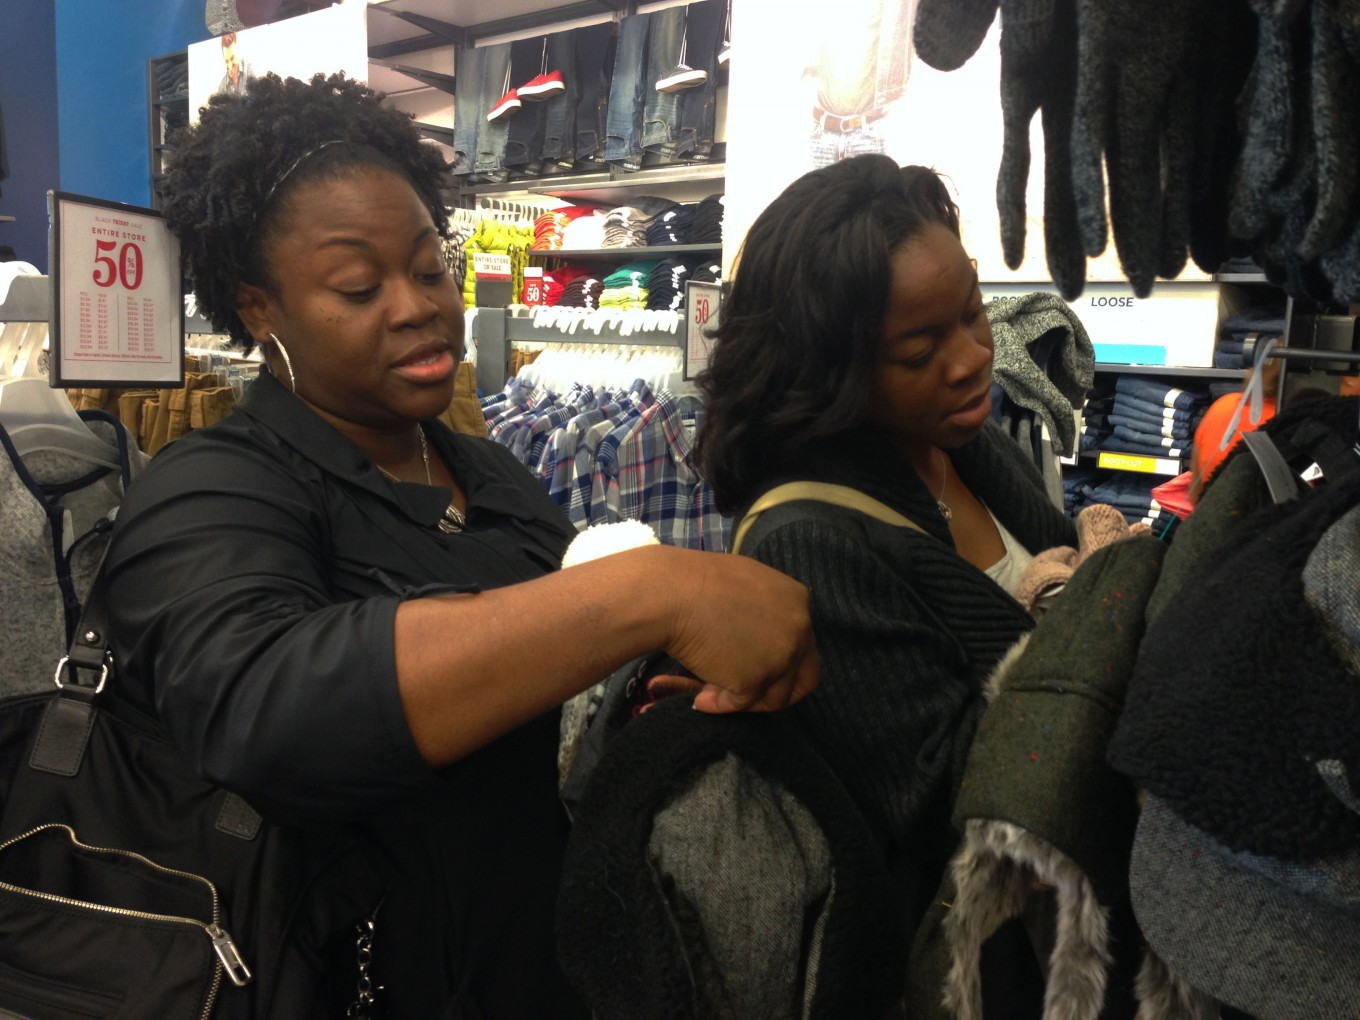 Tosha Hightower, a postmaster who lives in Arlington, shopped at Old Navy with her daughter, Danielle. Photo/Courtney Collins